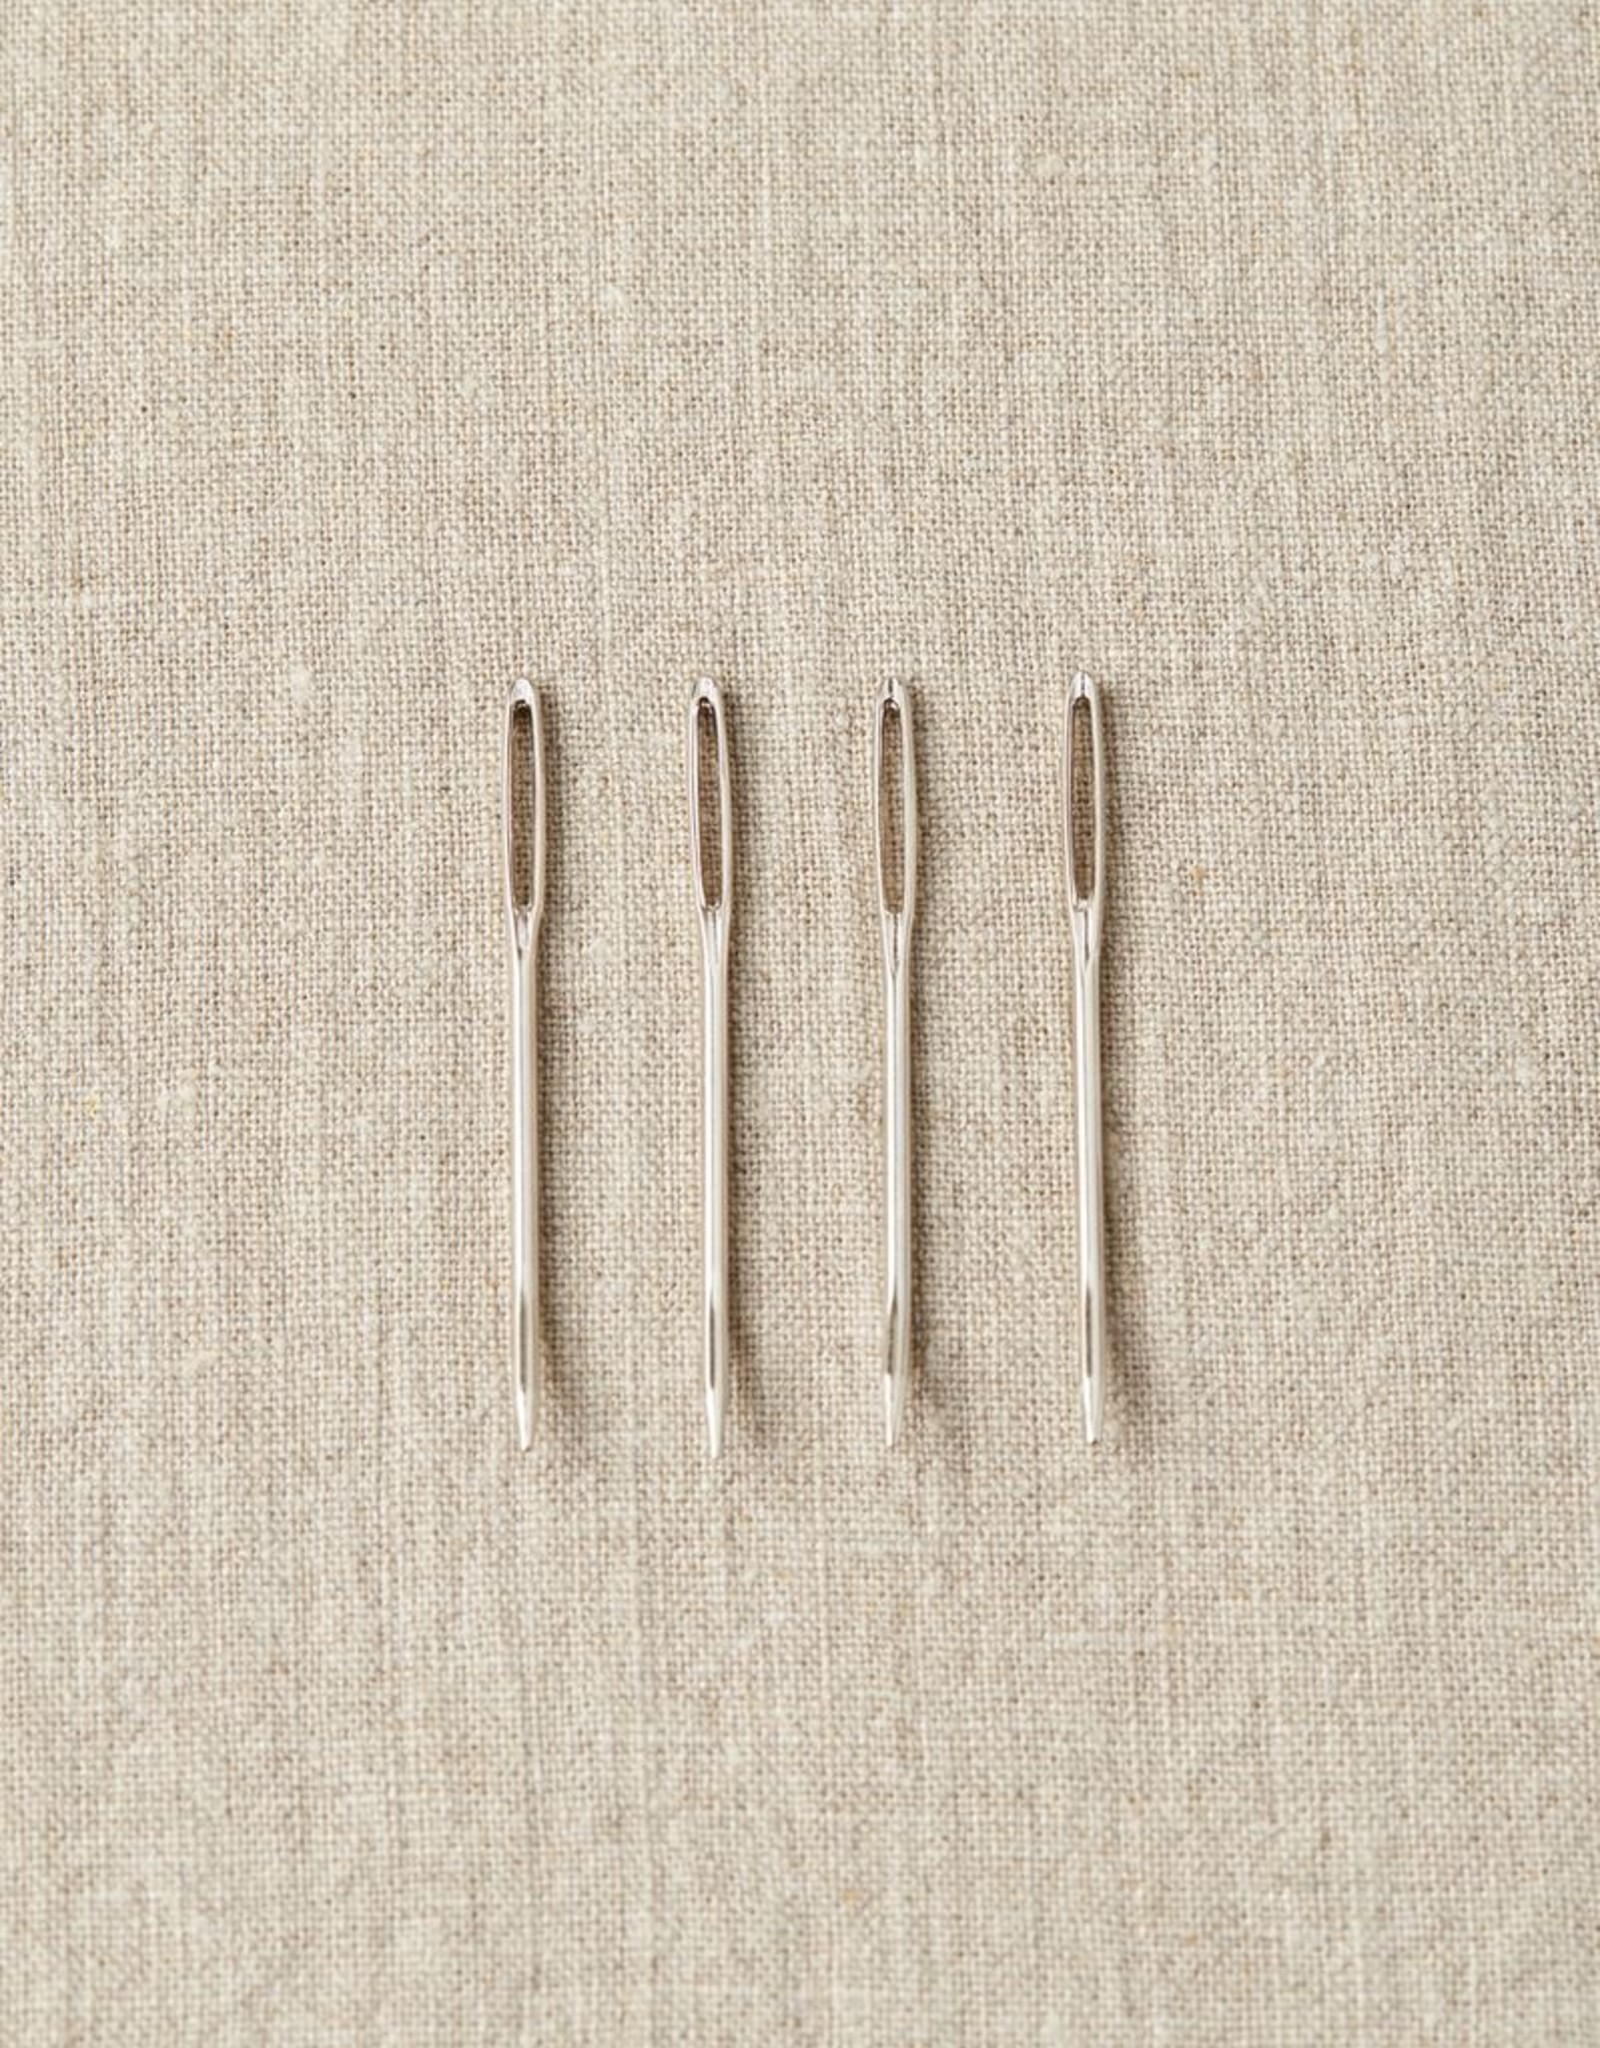 Cocoknits Bent Tip Tapestry Needles